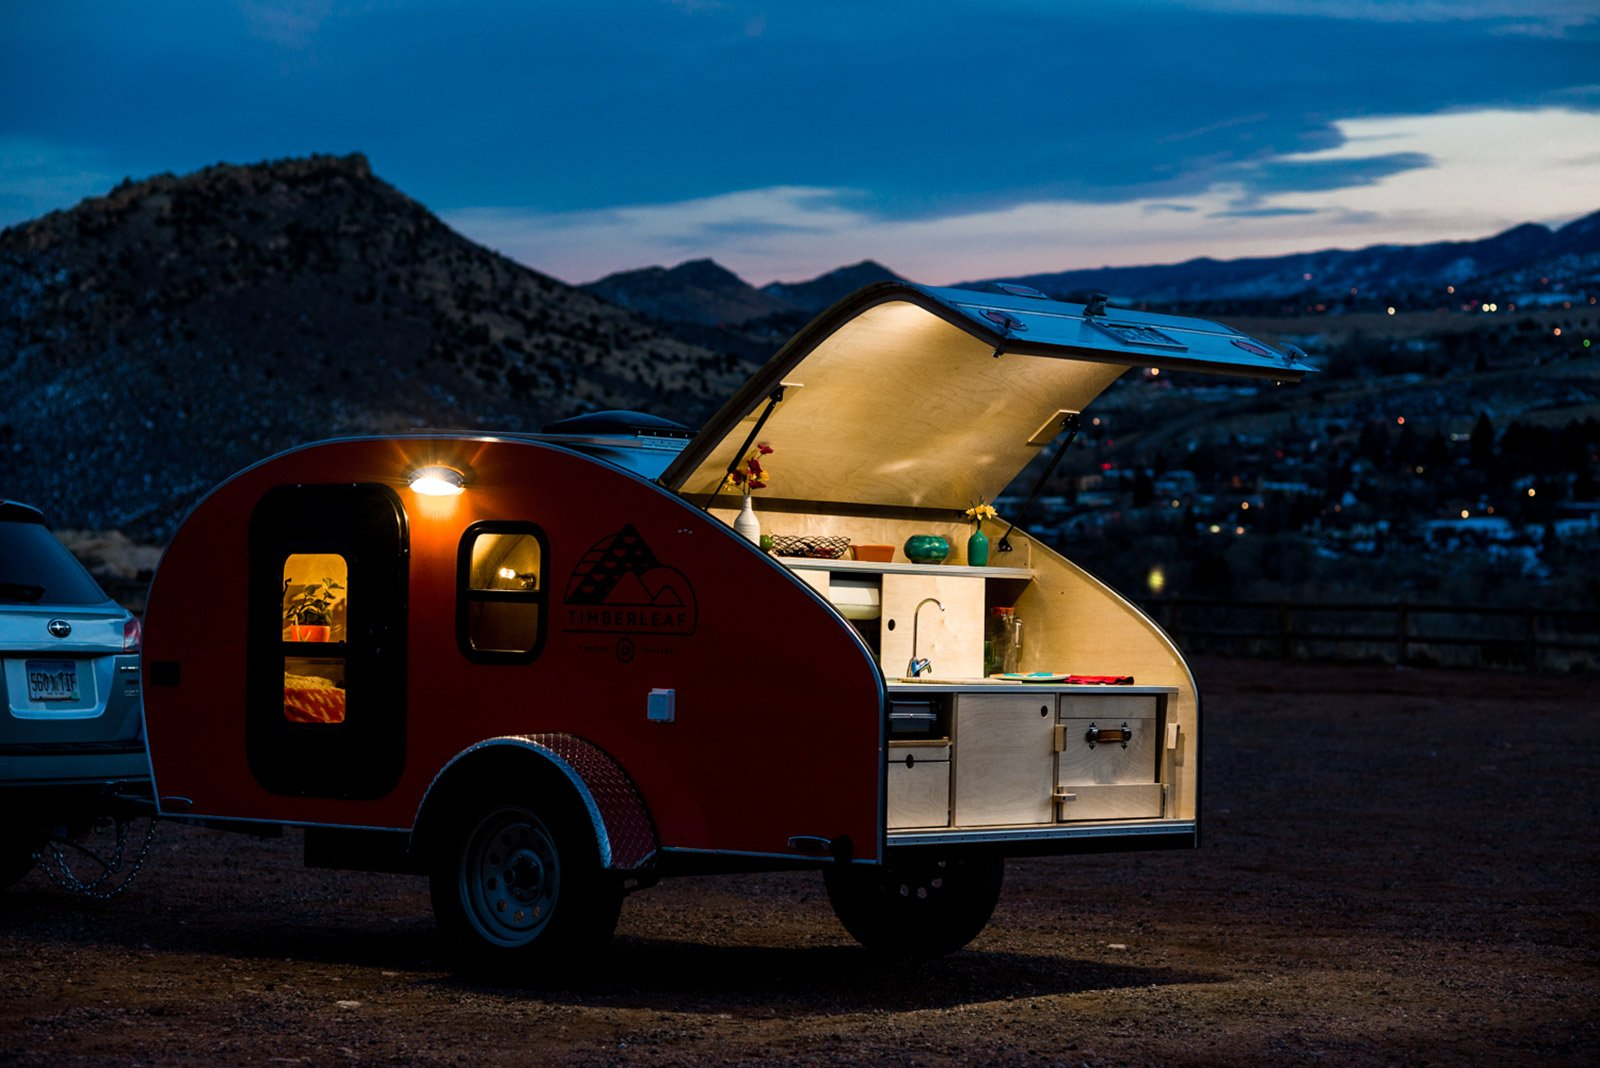 the timberleaf teardrop trailer